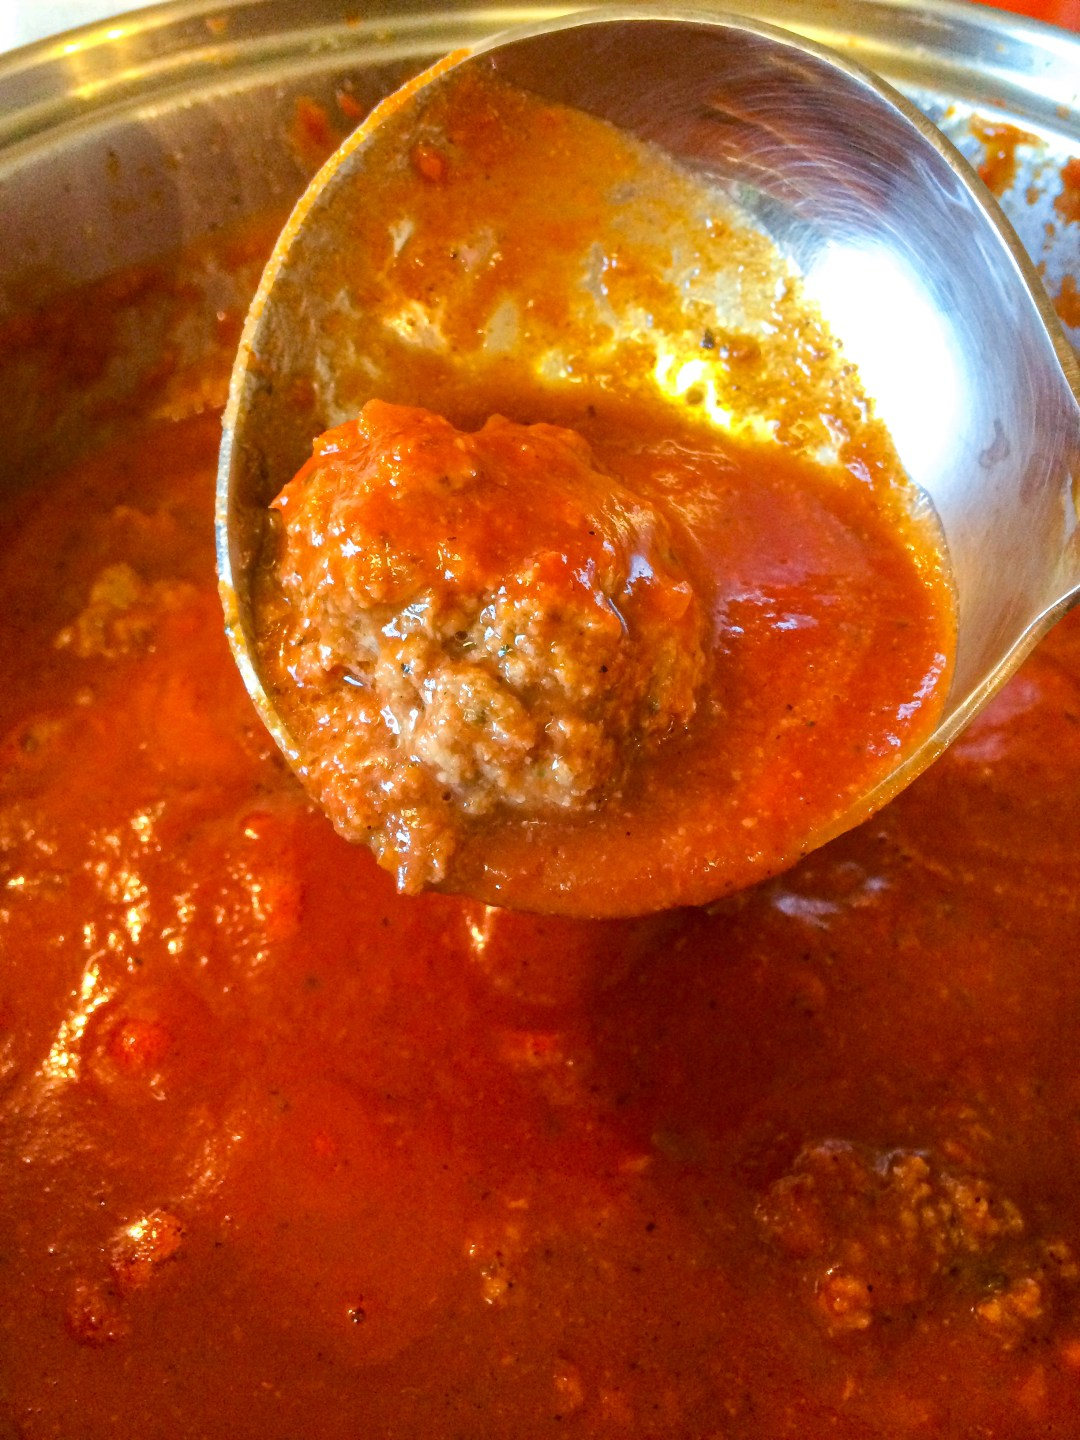 Gently place the raw meatball into the seasoned simmering sauce.